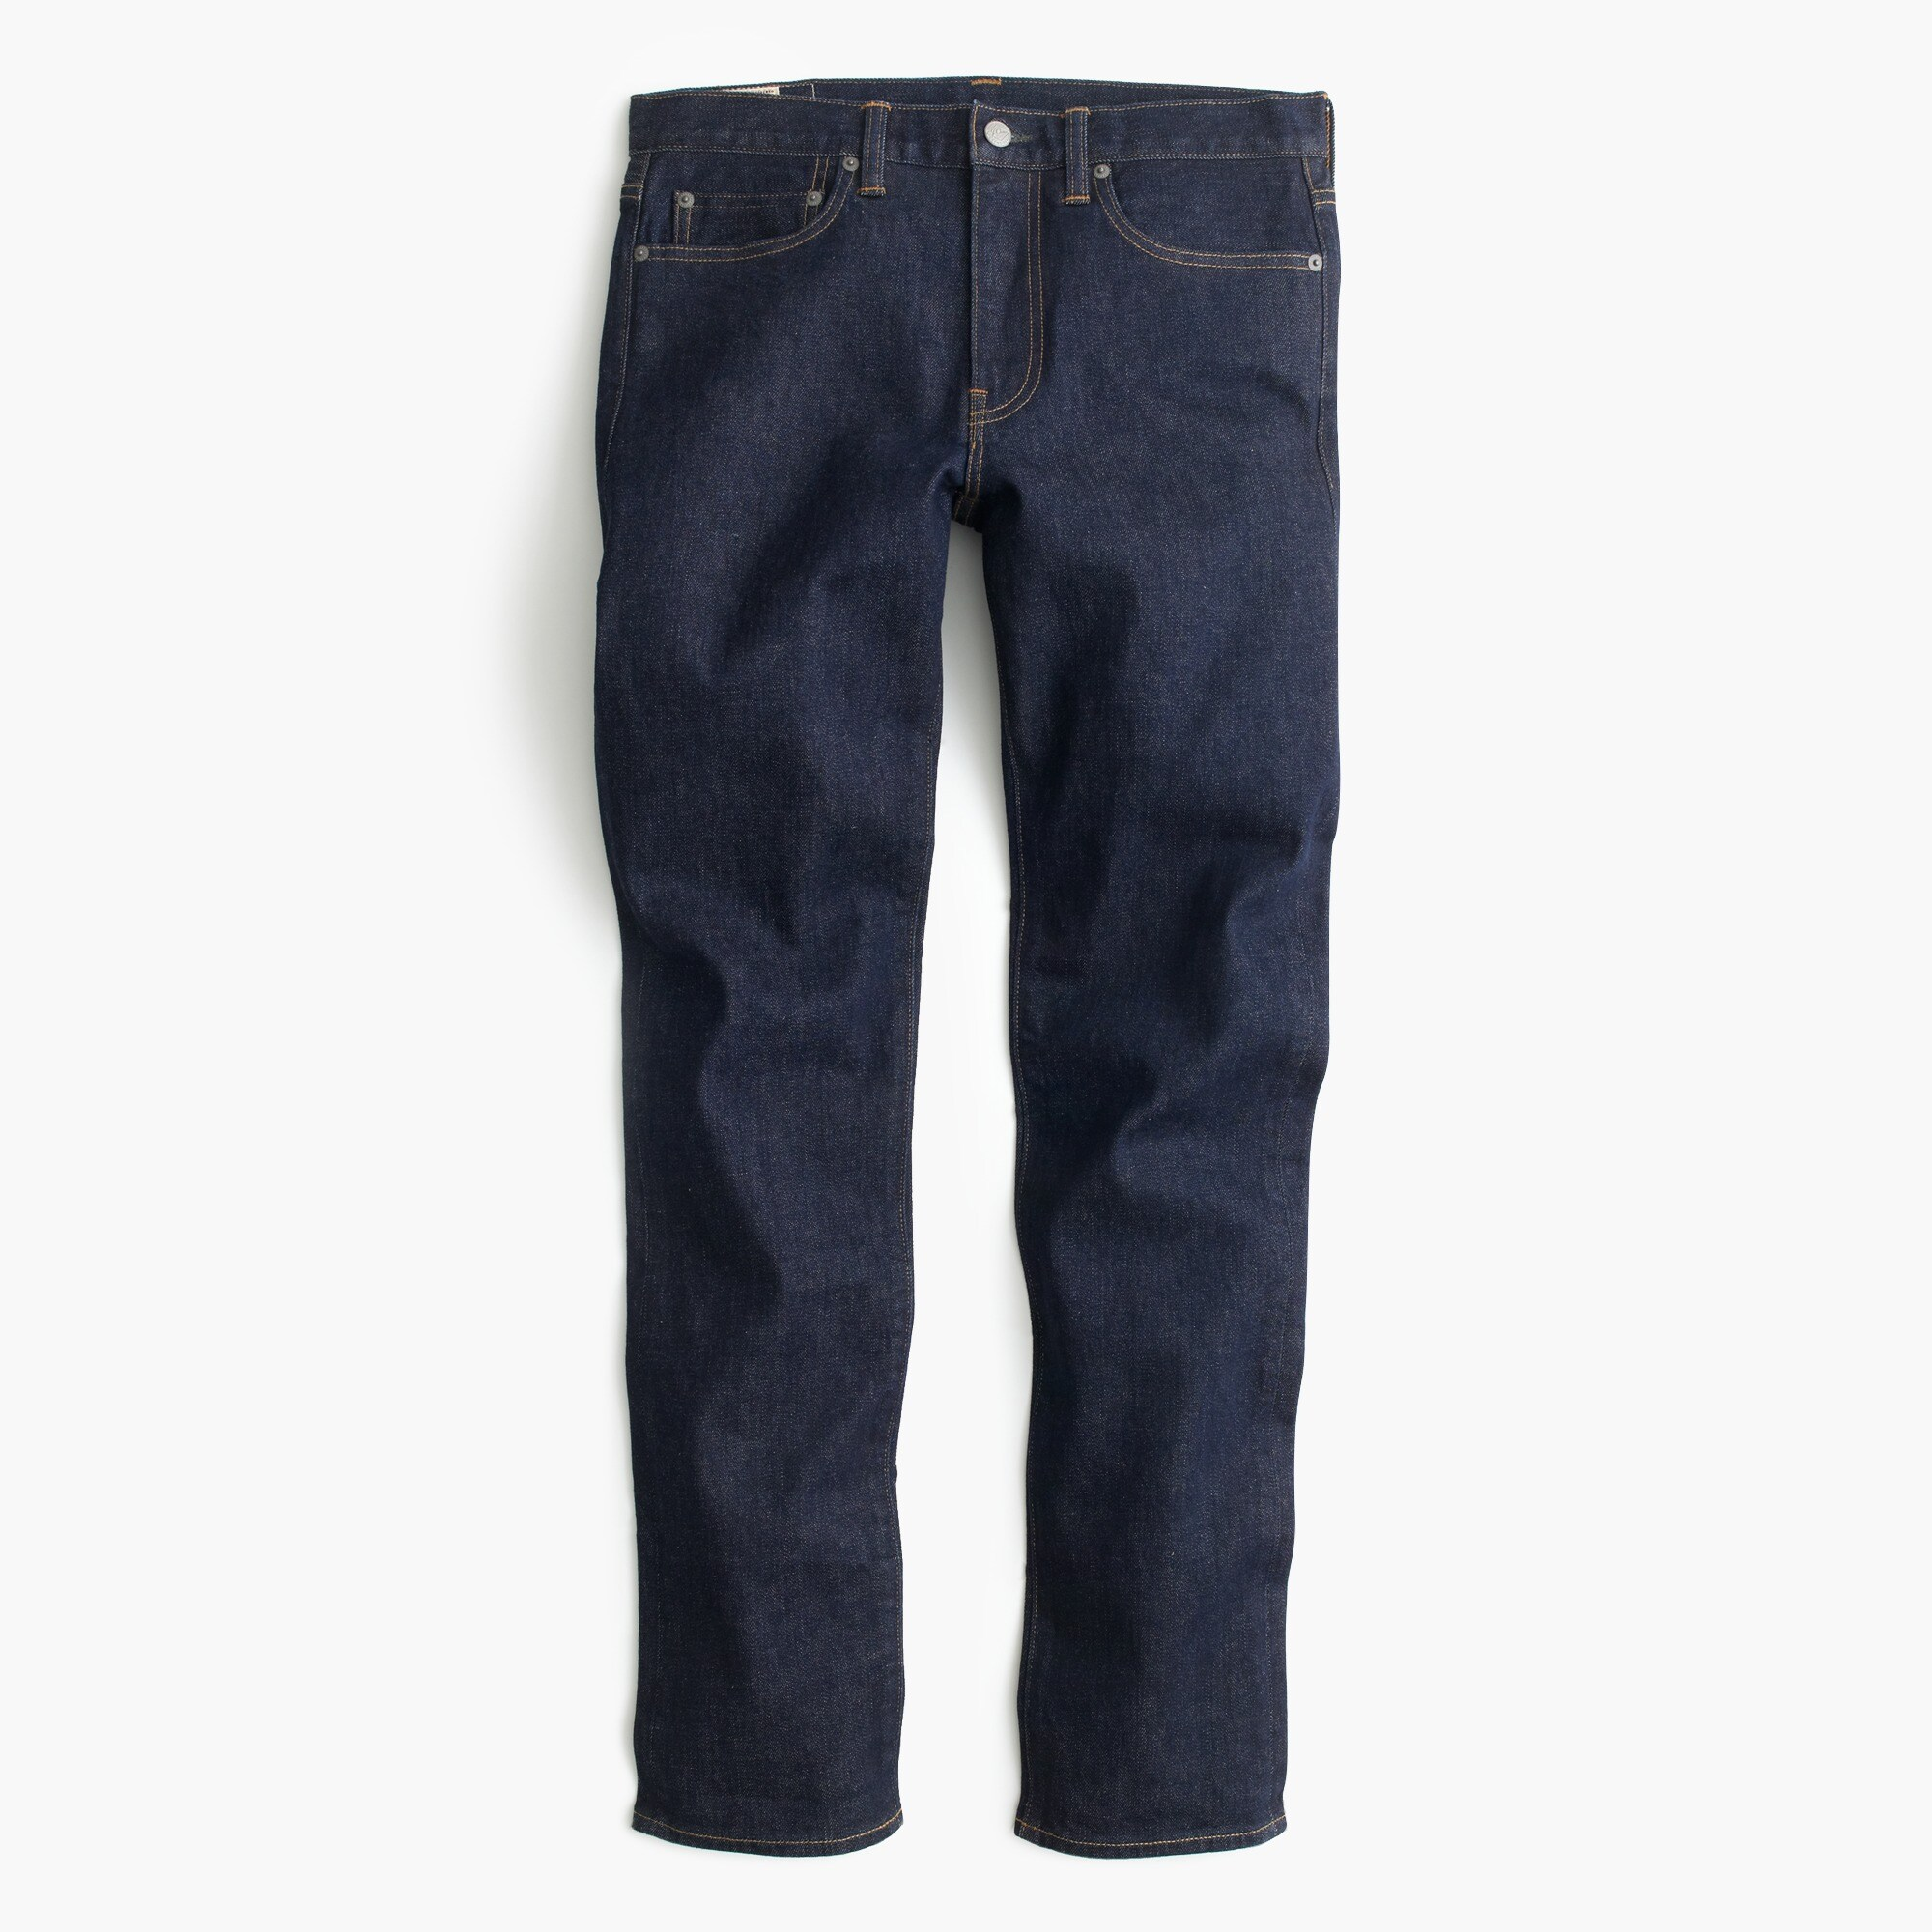 men's 770 straight-fit stretch jean in indigo - men's denim